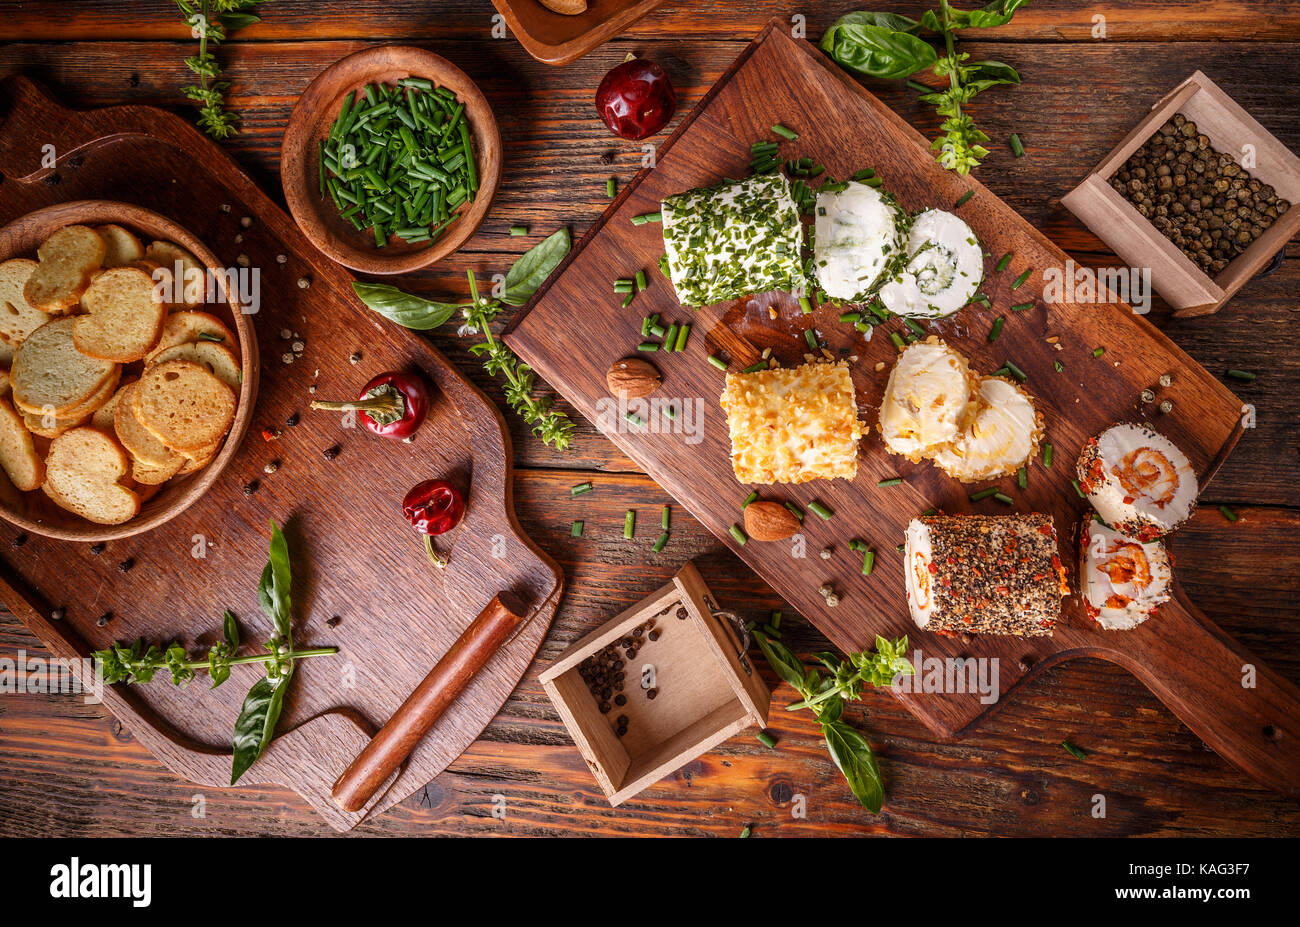 Top view of soft cheese with herbs and spices on wooden cutting board - Stock Image